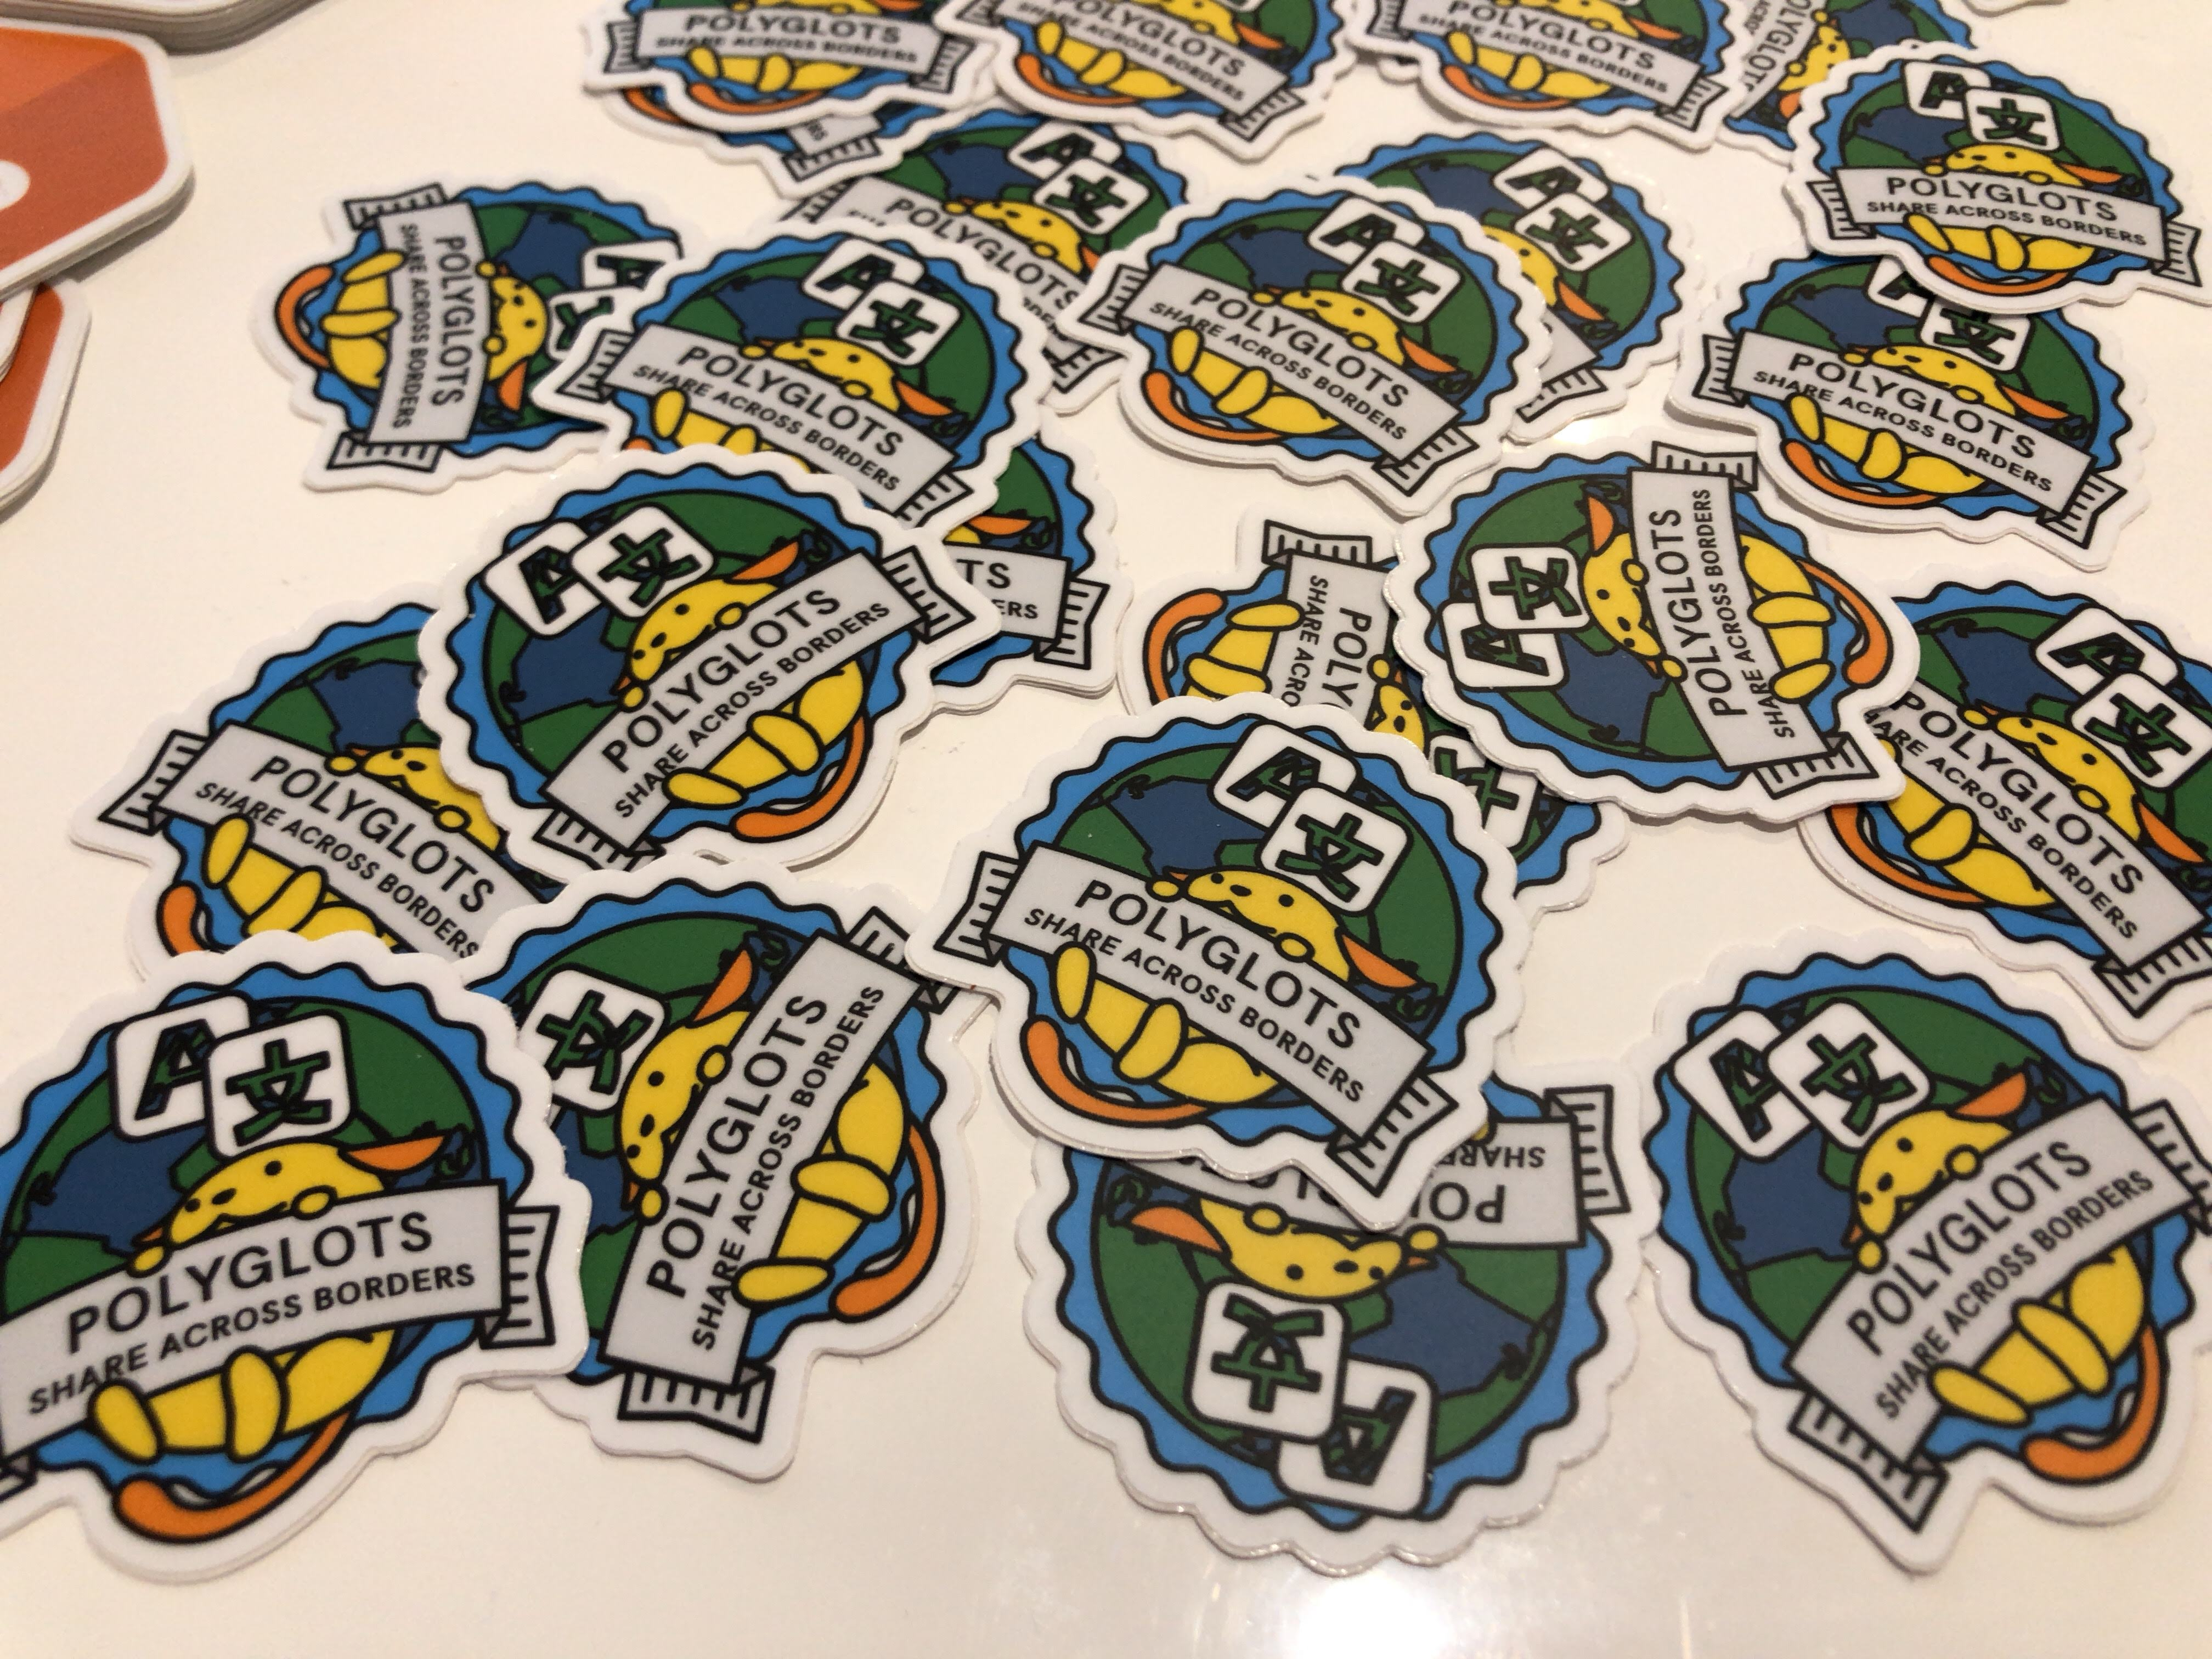 Polyglots stickers at GoDaddy booth